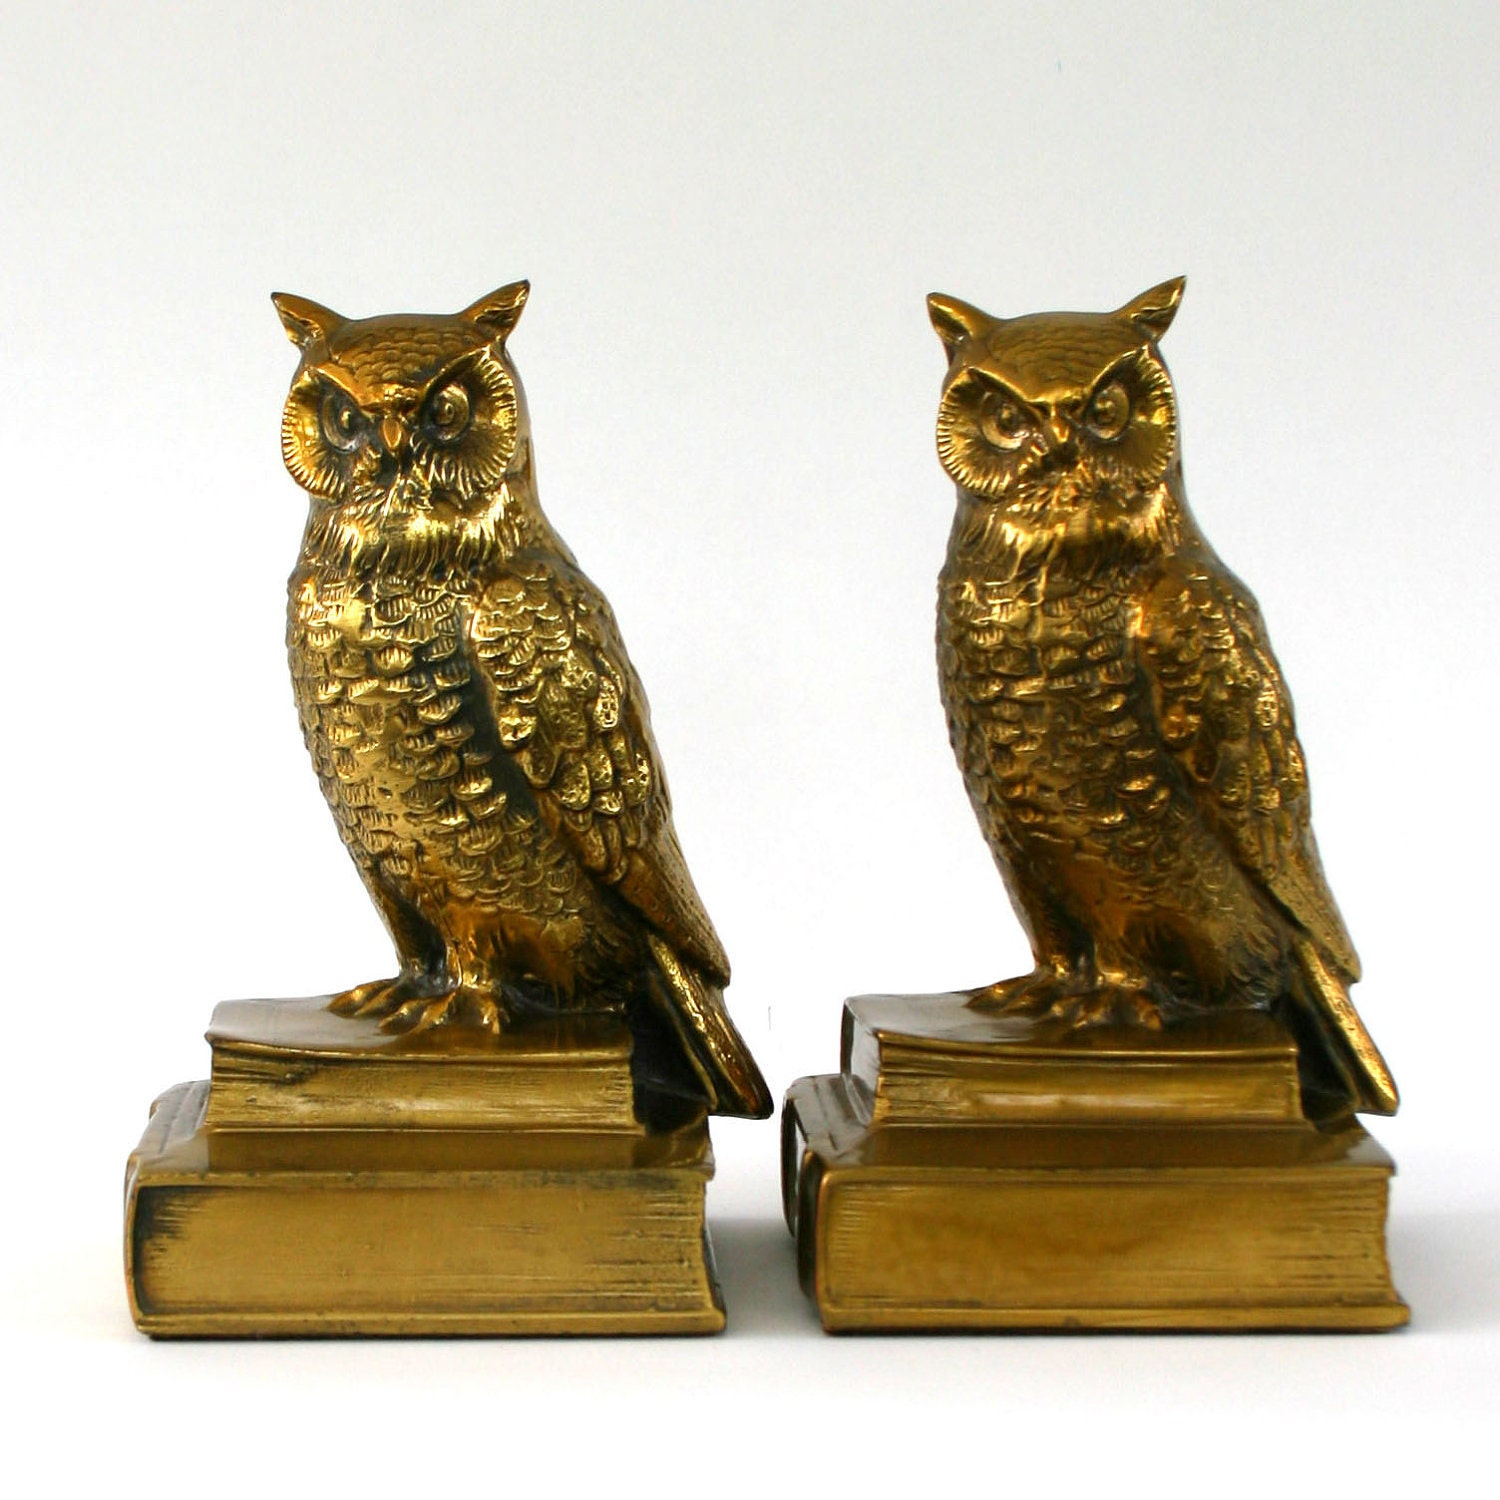 Vintage Owl Bookends Brass Books Wise Old Owl Fall Autumn